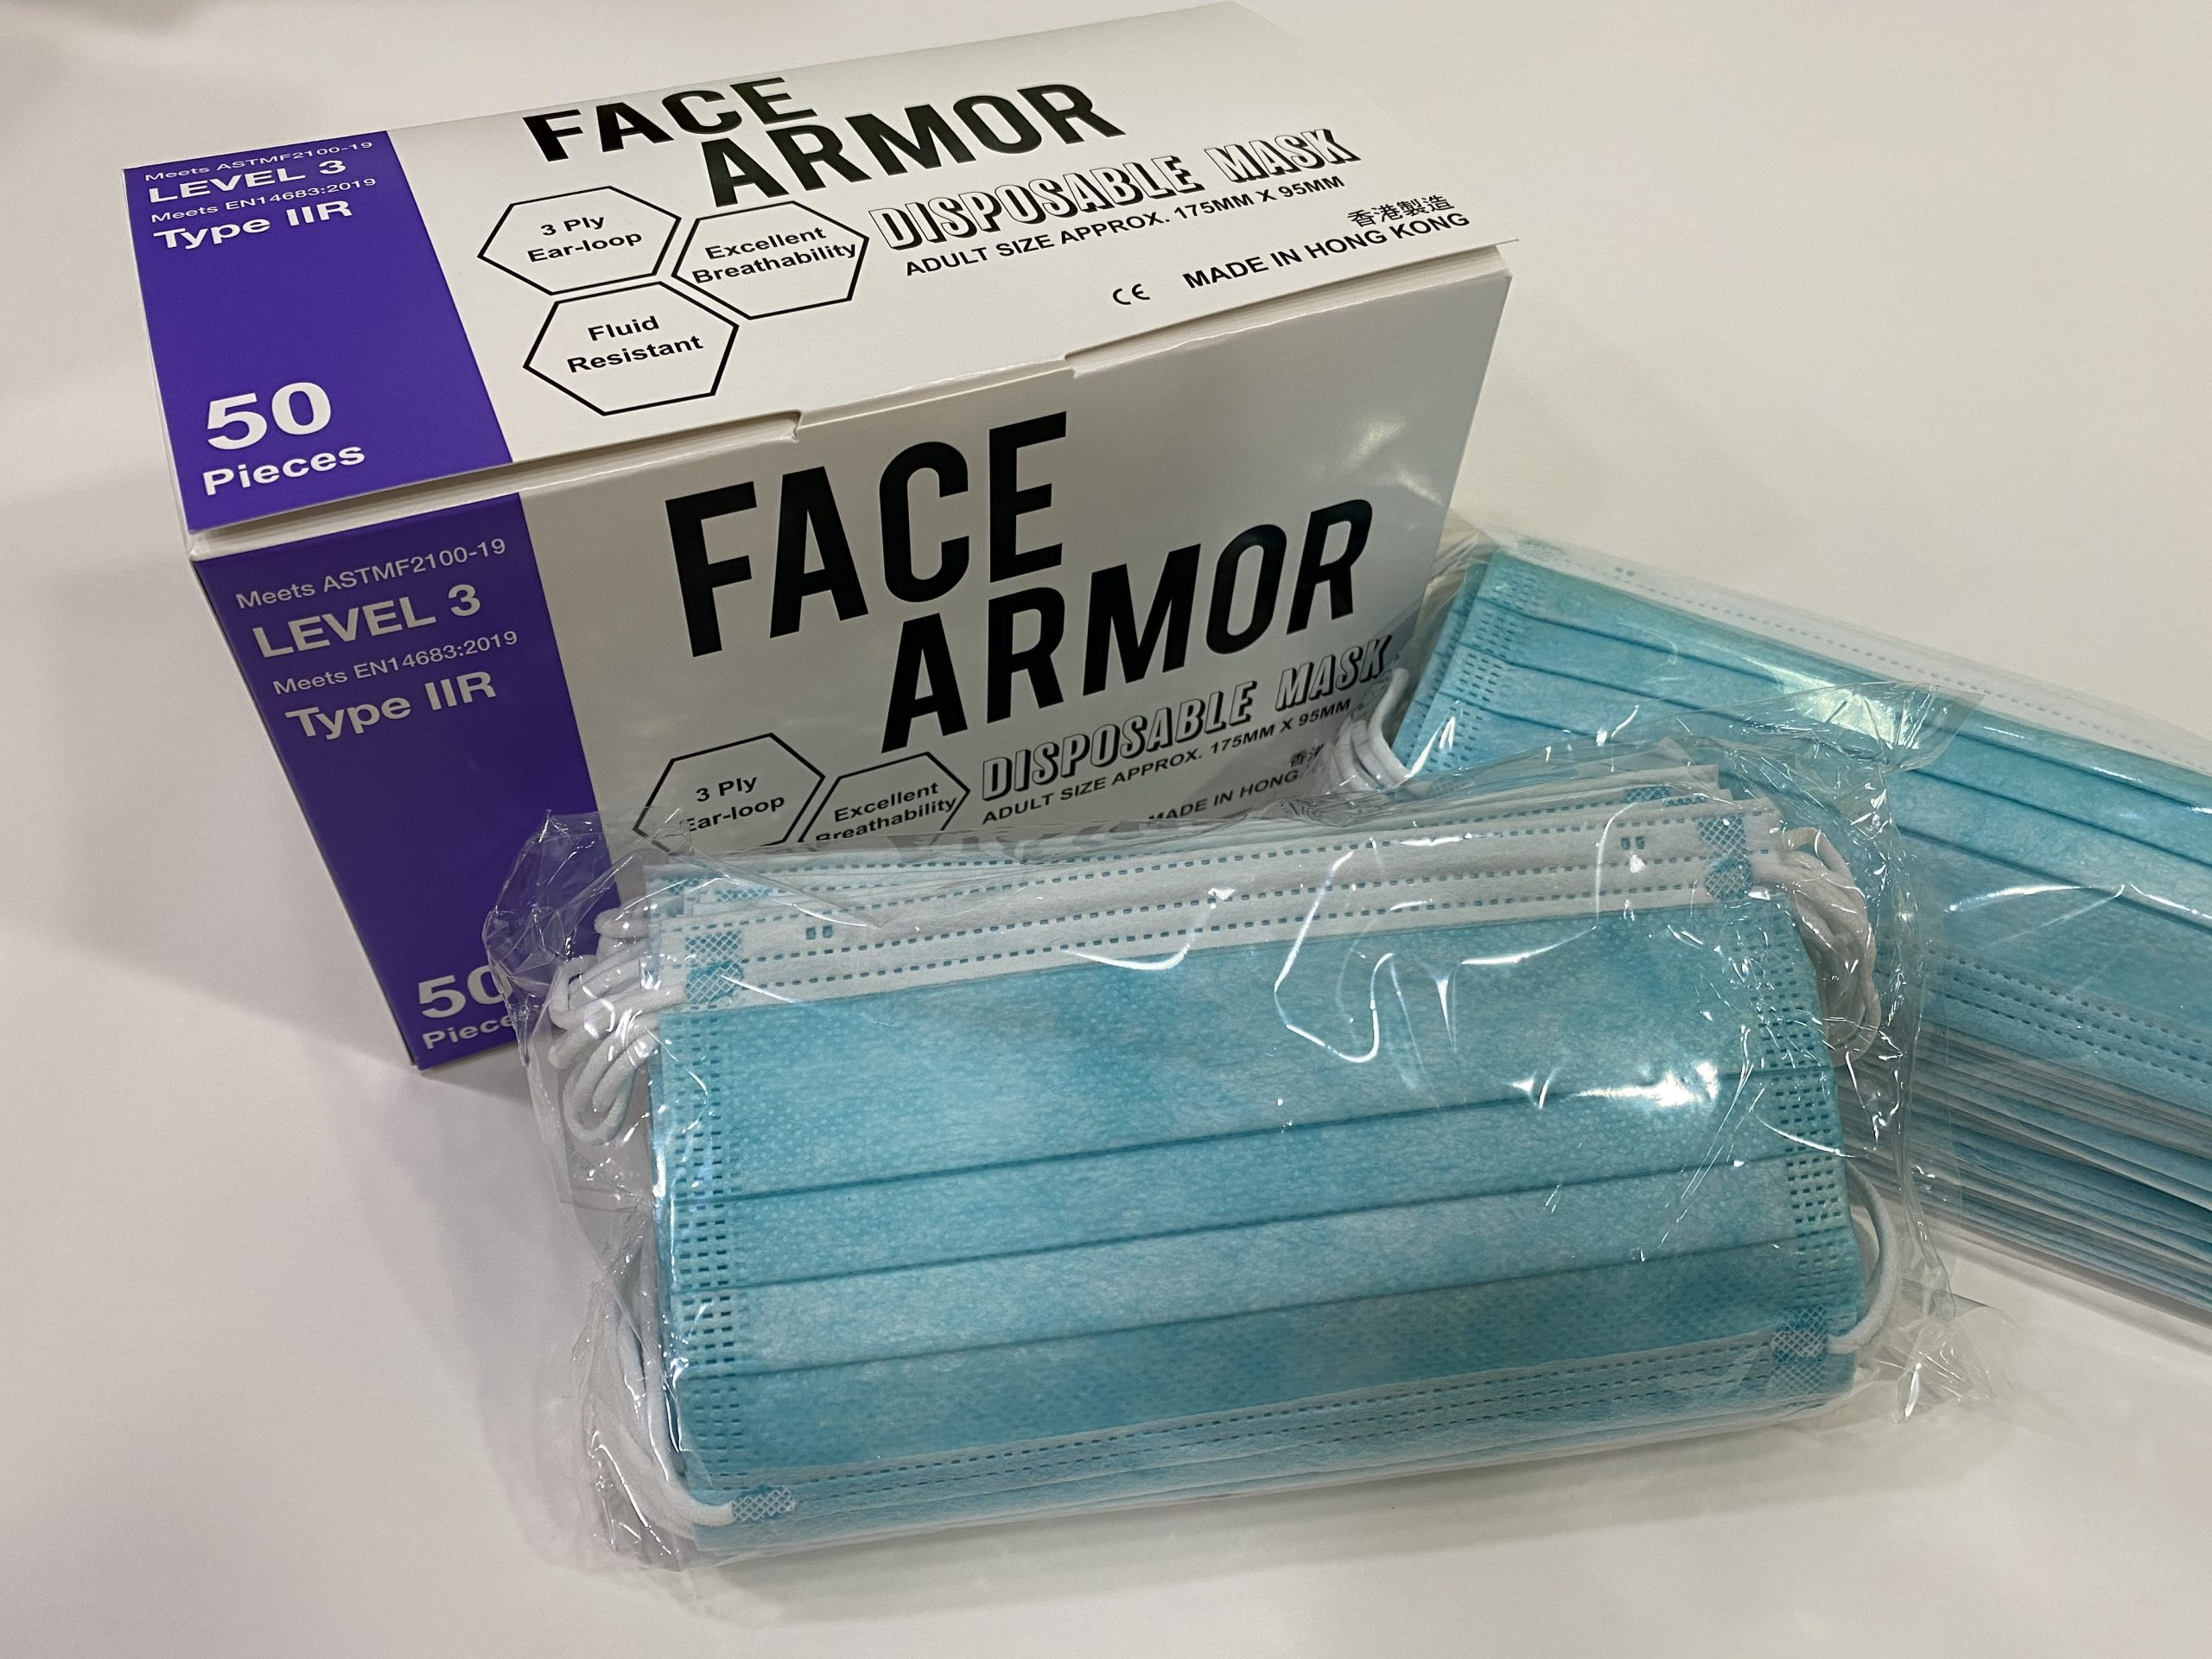 Face Armor Disposable Masks | ASTM LEVEL 3 | Made in Hong Kong| 50 PIECES | LIGHT BLUE